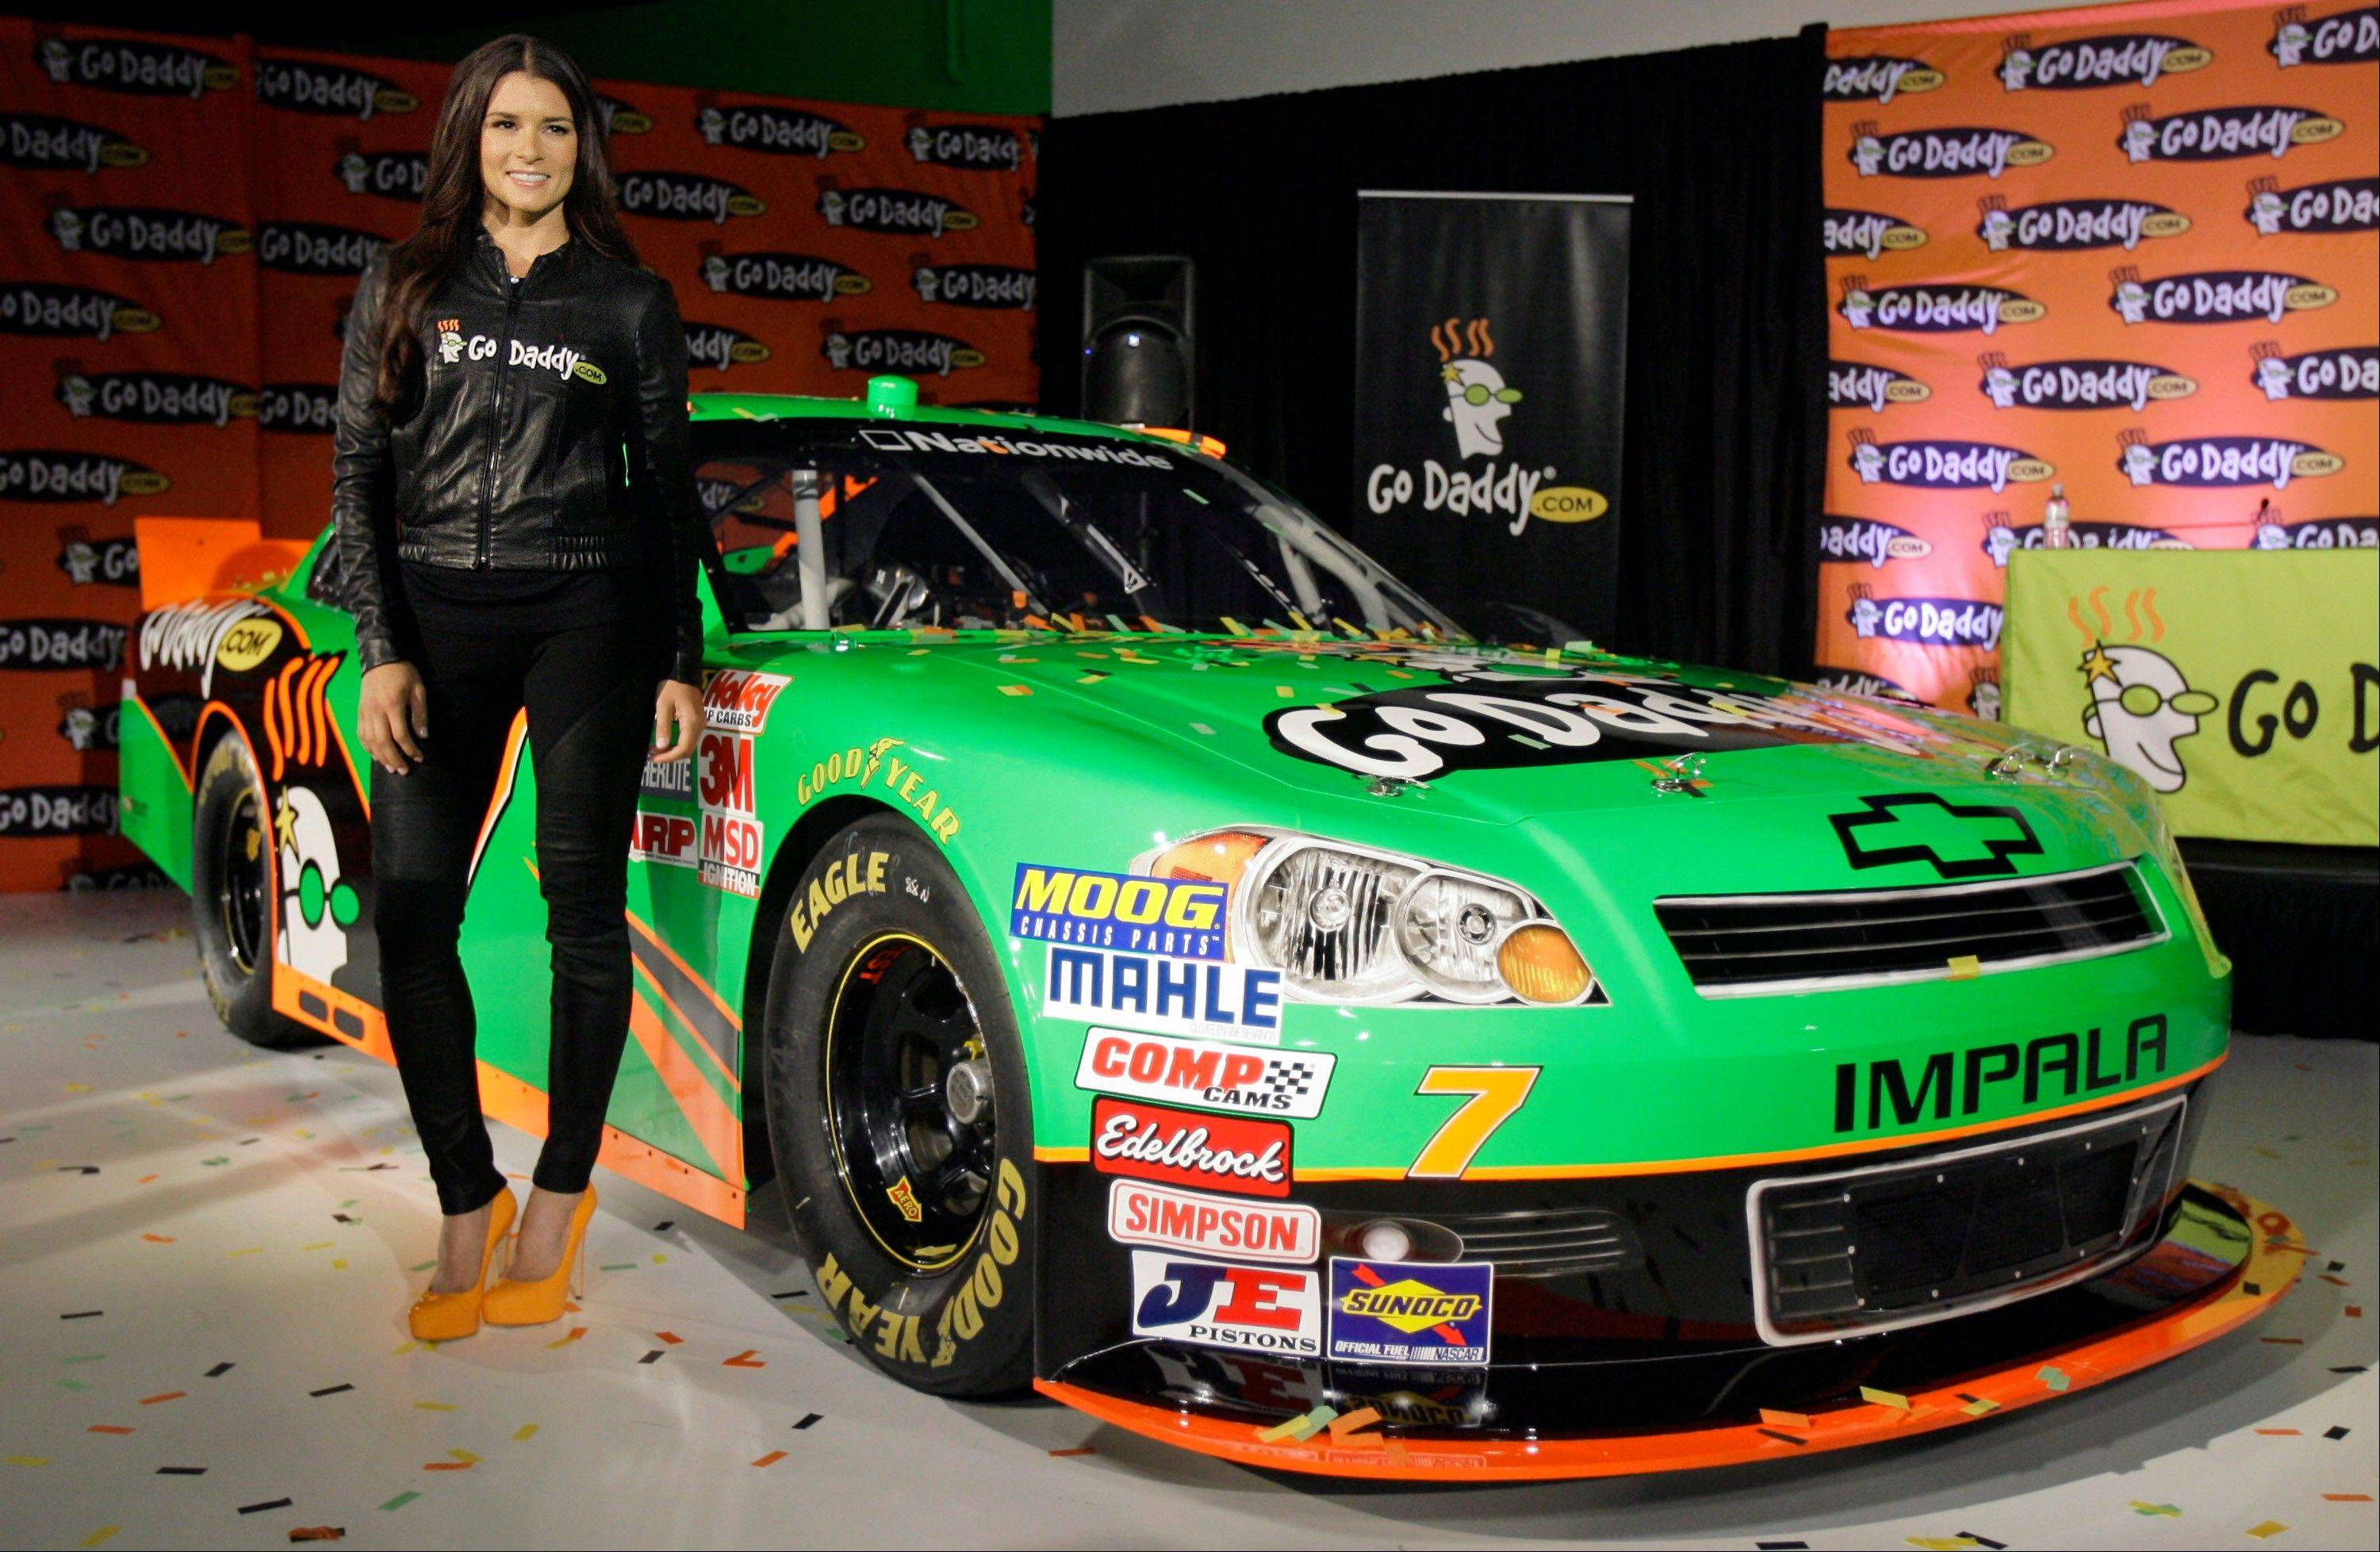 Driver Danica Patrick displays Thursday the car that she will drive full-time in the NASCAR Nationwide Series circuit and select Sprint Cup races. After months of skirting speculation, Patrick announced Thursday that she�s leaving IndyCar in 2012 to run a full Nationwide schedule with JR Motorsports and up to 10 Sprint Cup races for Stewart-Haas Racing.